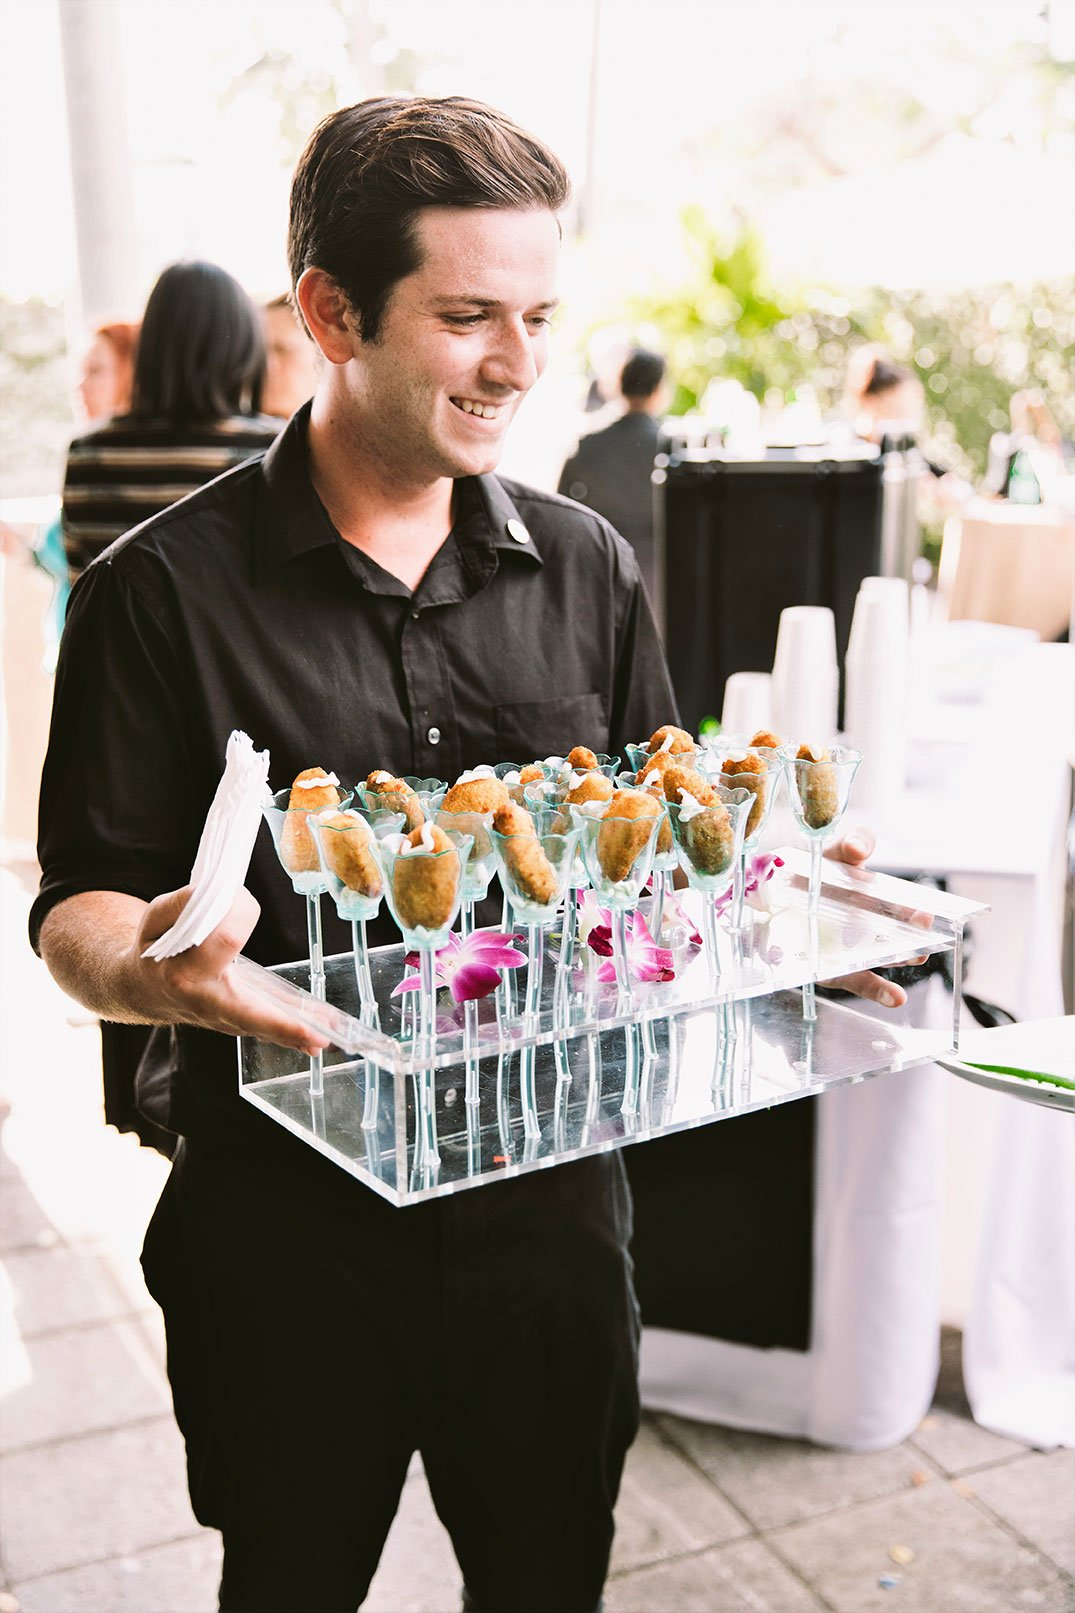 Eggwhites Catering server at at Hispanicize Miami 2017 at Hispanicize 2017 DiMe Summit cocktail reception